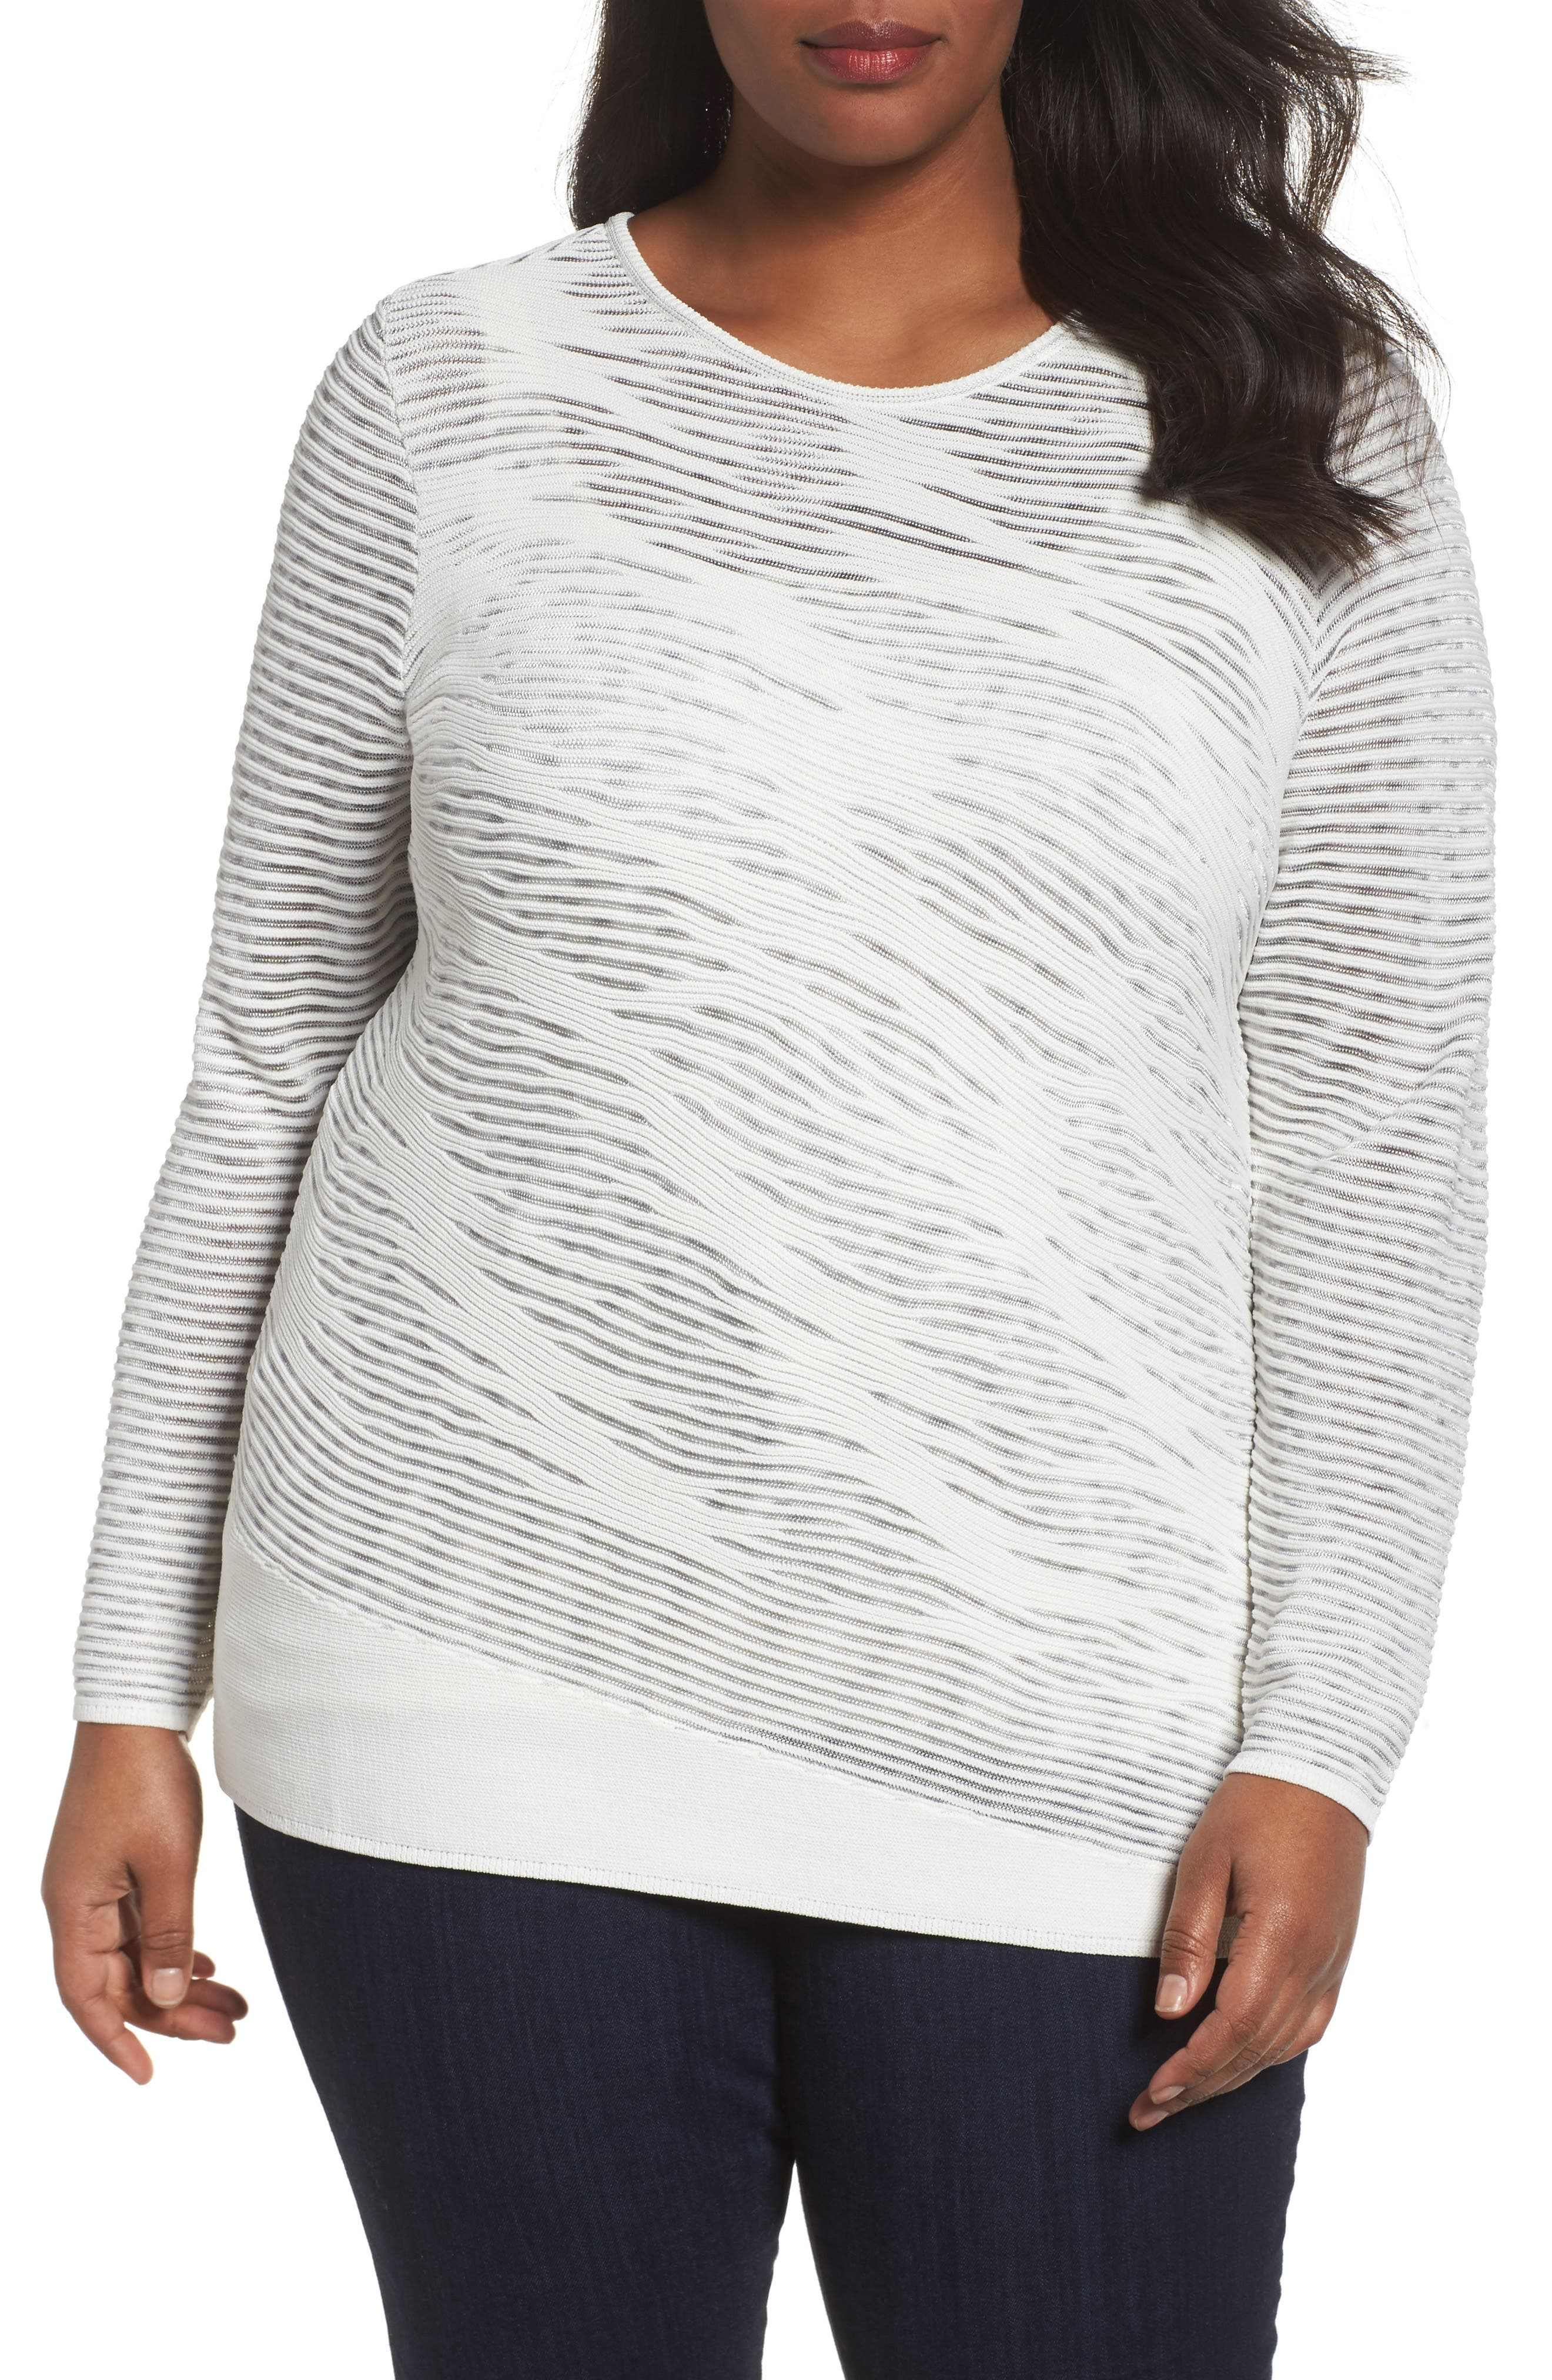 Alternate Image 1 Selected - NIC+ZOE This Is Living Knit Top (Plus Size)